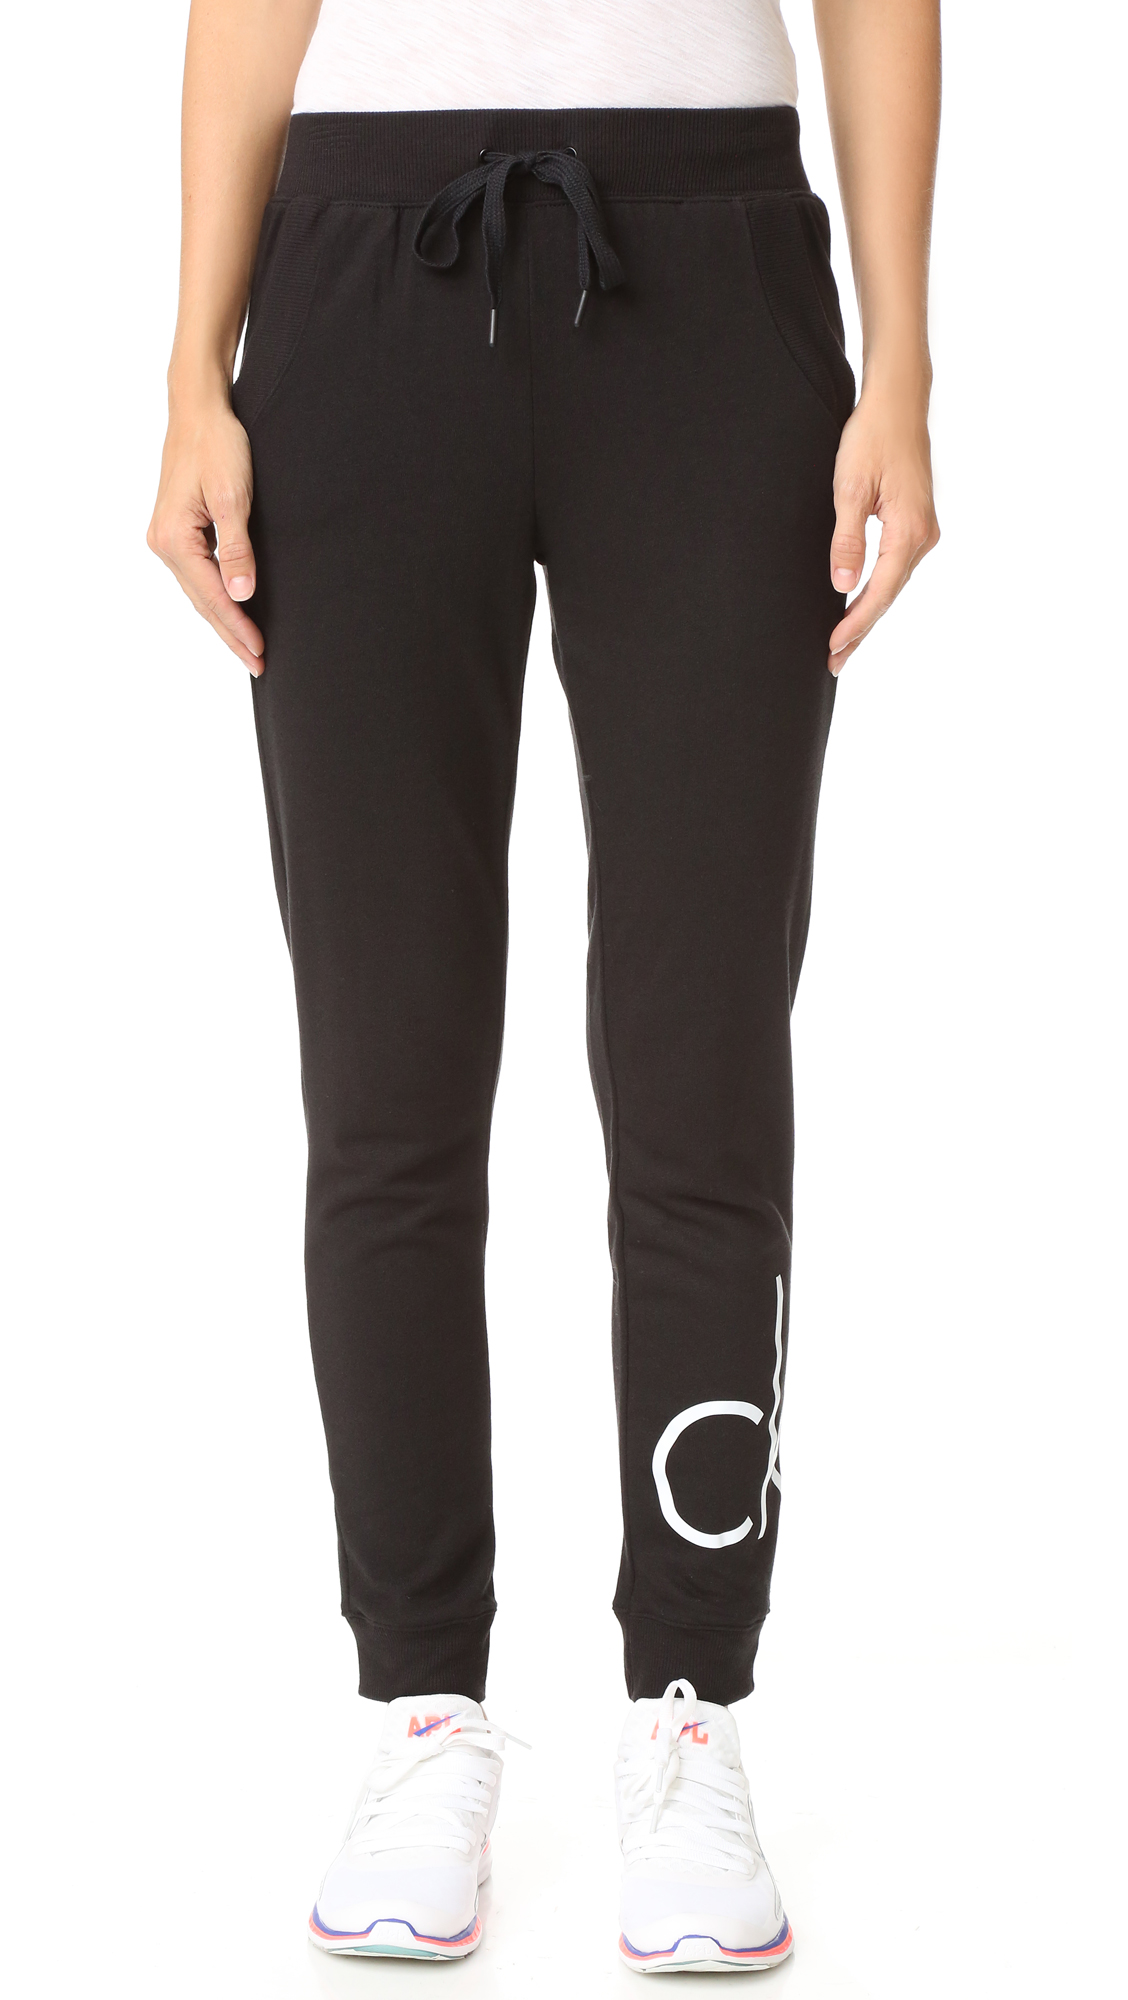 Slouchy Calvin Klein Underwear sweatpants with large logo lettering. Ribbed cuffs. Slant hip pockets. Elastic waistband with drawstring. Fabric: French terry. 40% viscose/37% cotton/23% polyester. Wash cold. Imported, Sri Lanka. Measurements Rise: 10.75in / 27cm Inseam: 26in / 66cm